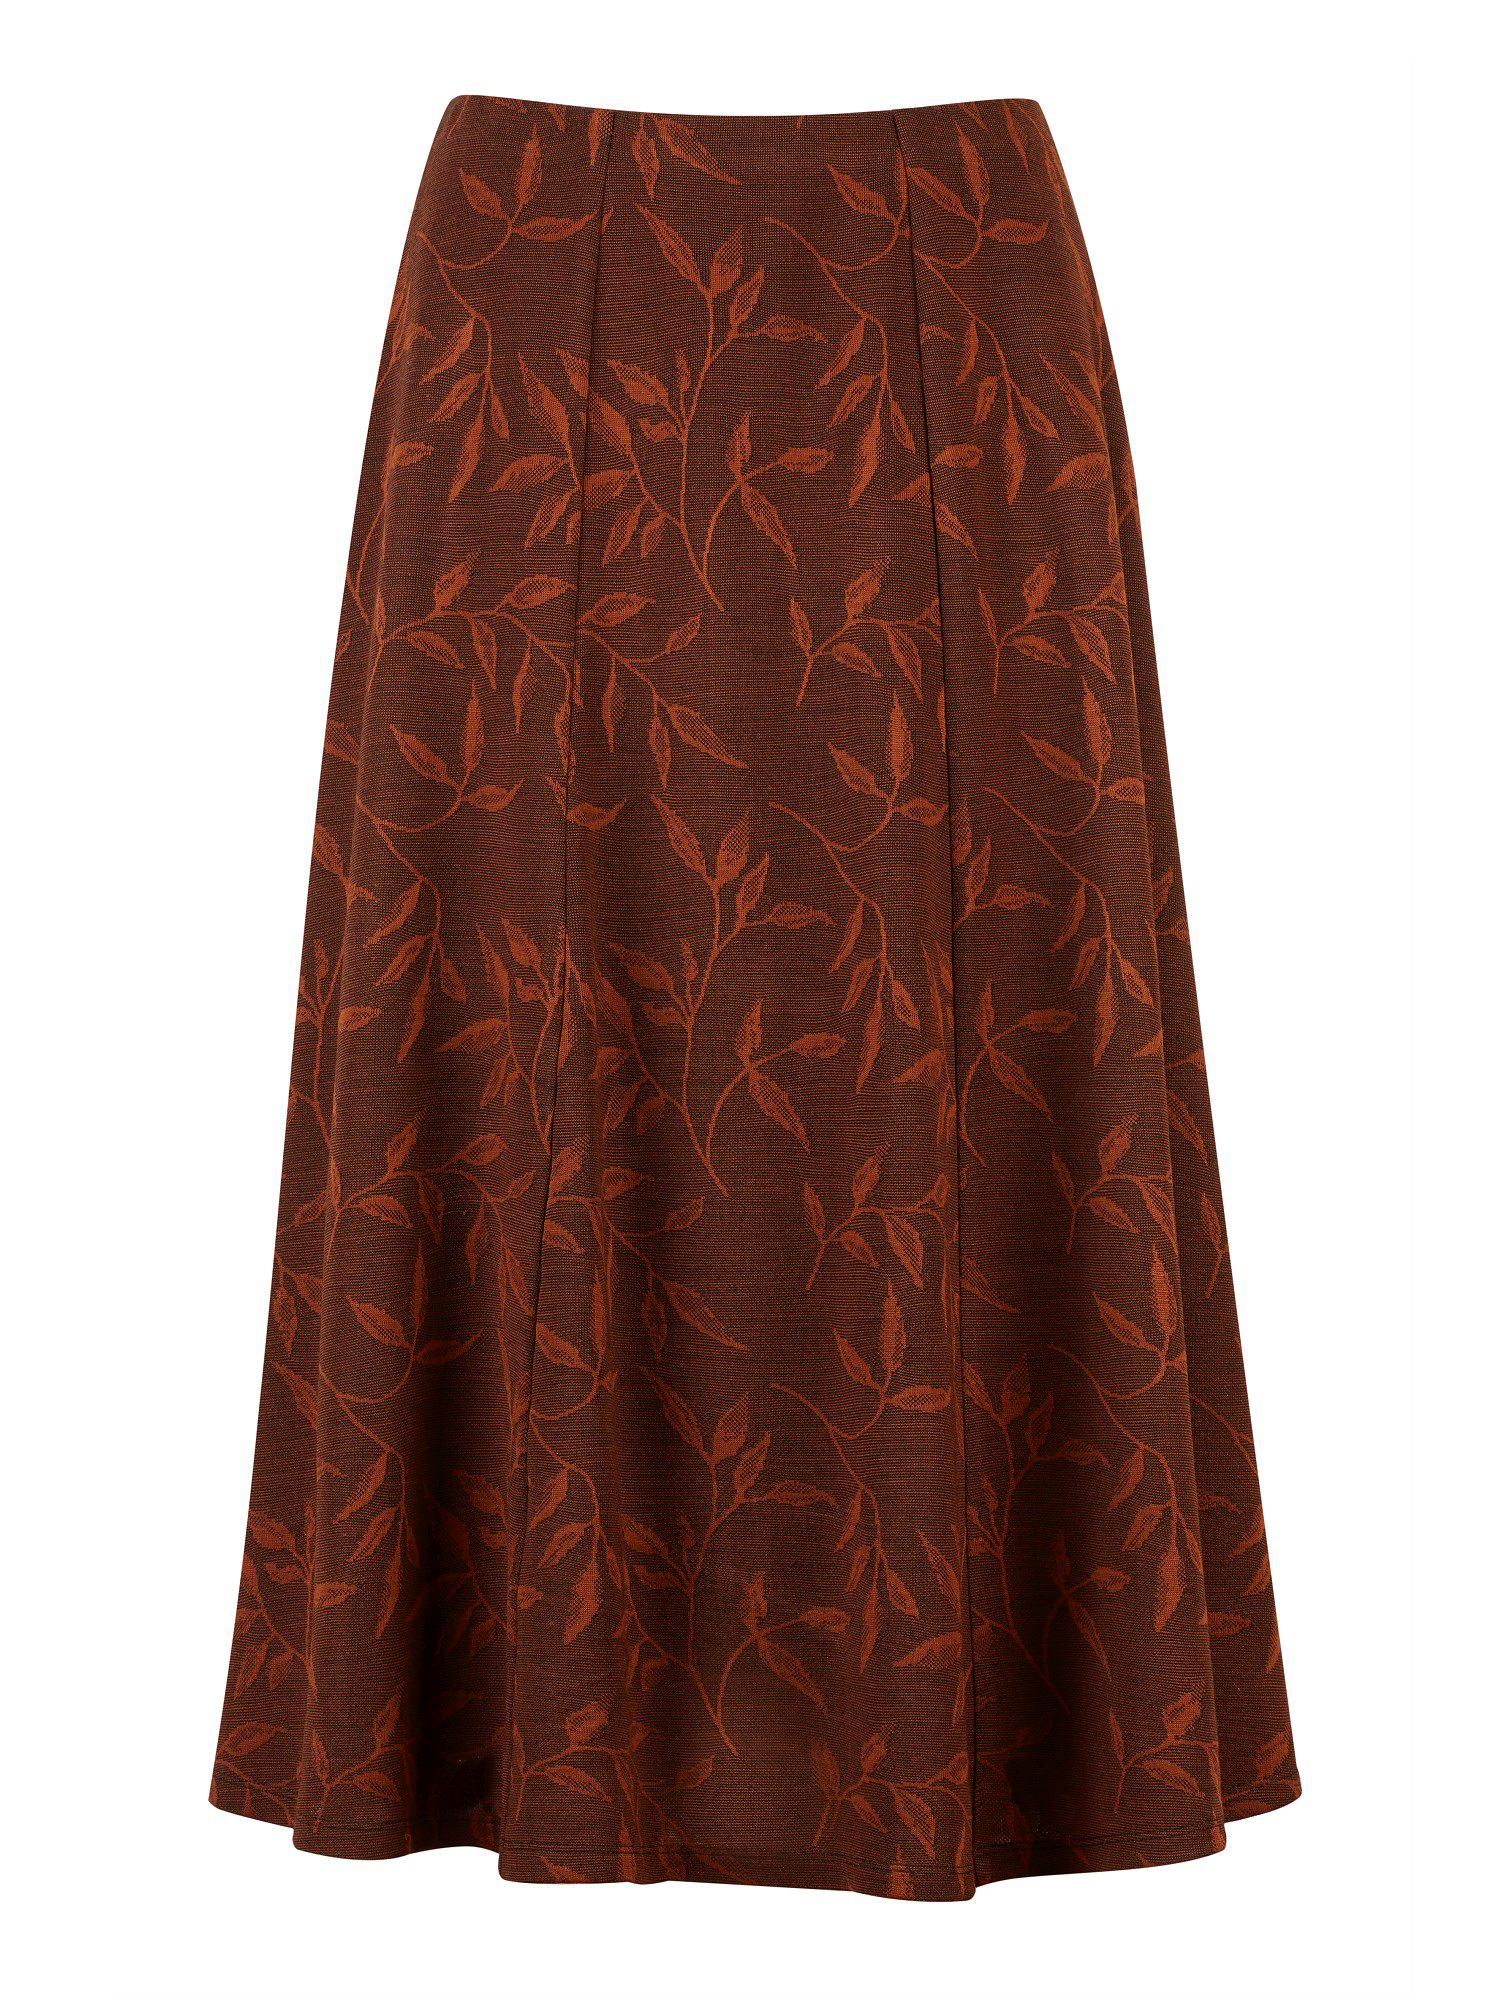 Winter spice jacquard skirt